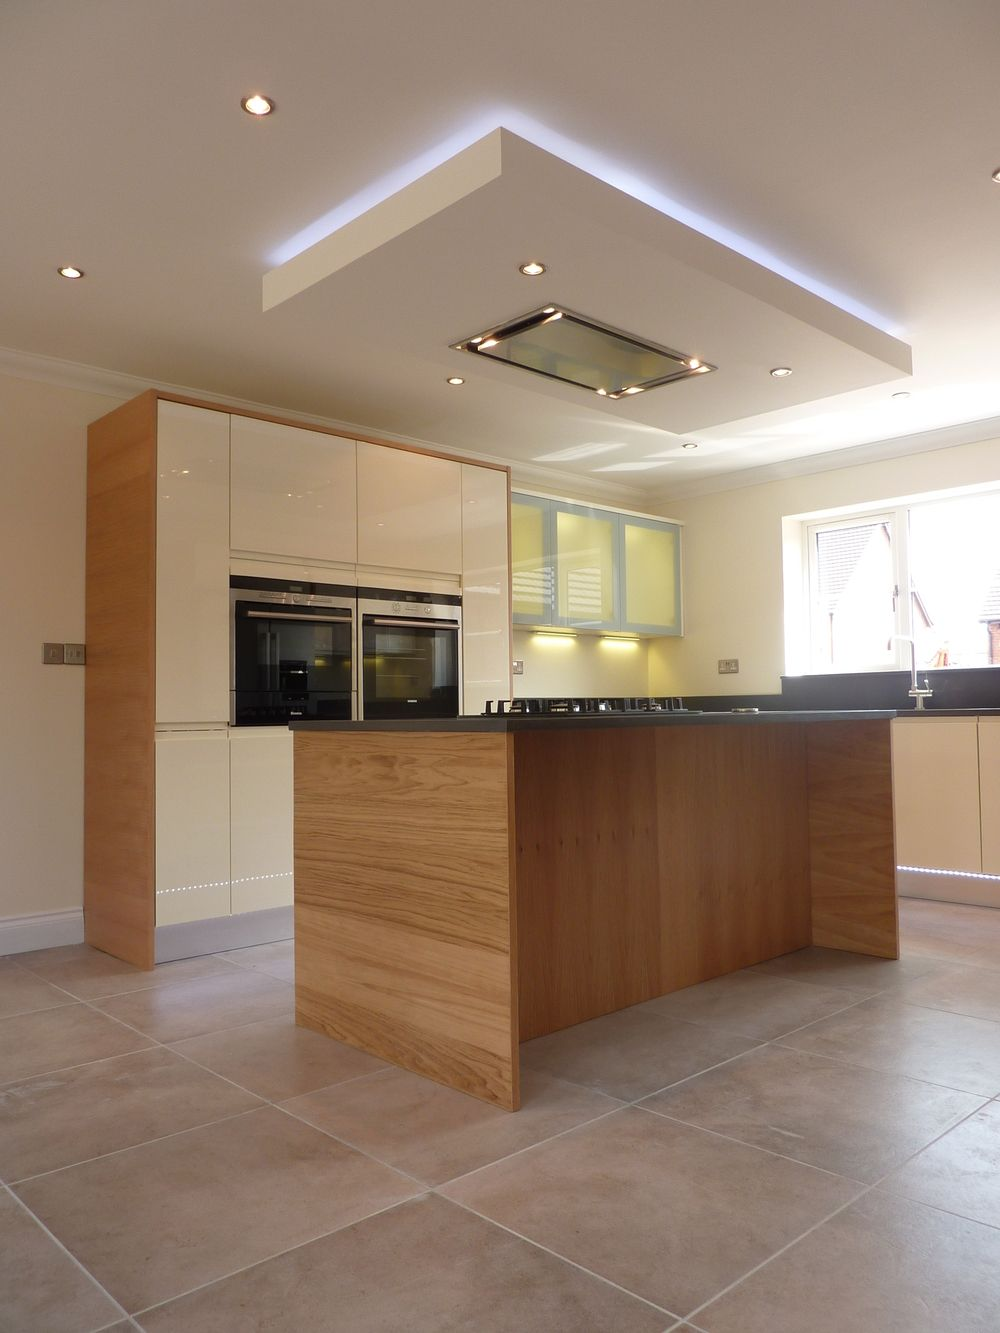 Island Extractor Fans For Low Ceilings Interior Design